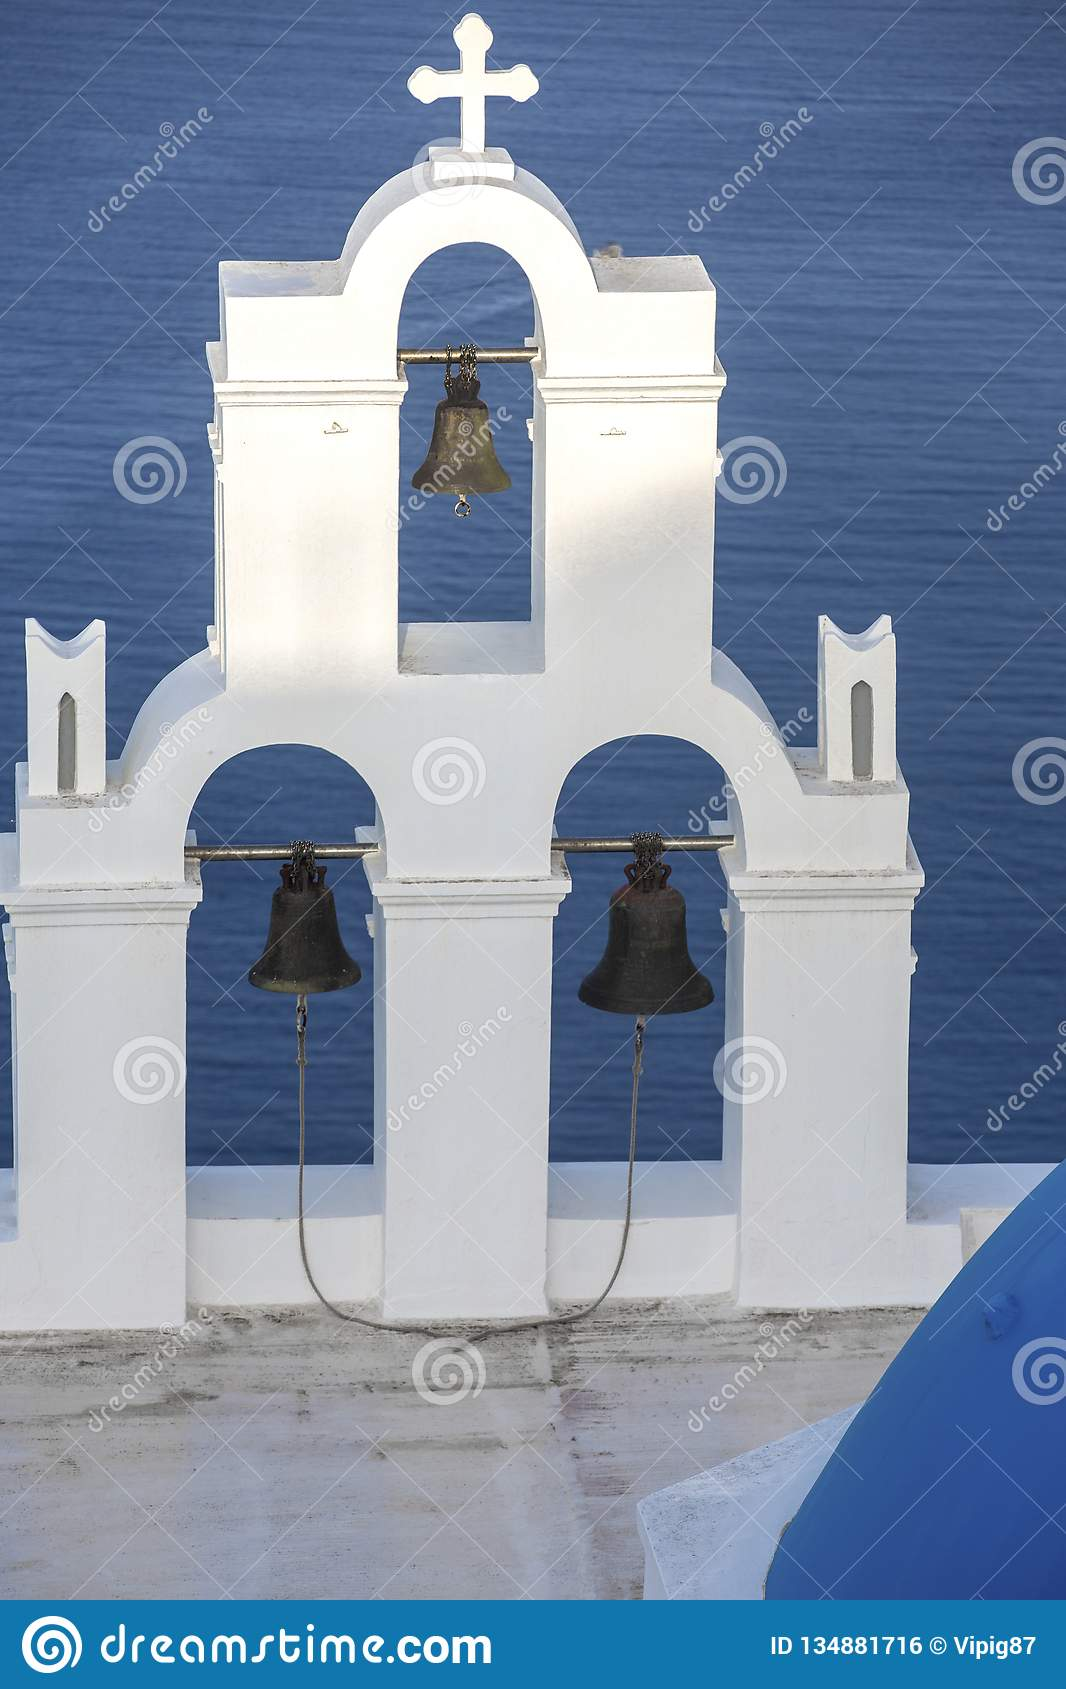 Whitewashed houses and blue dome church by the Aegean sea, Santoriniin Oia, Santorini, Greece. Famous blue domes in Oia village,